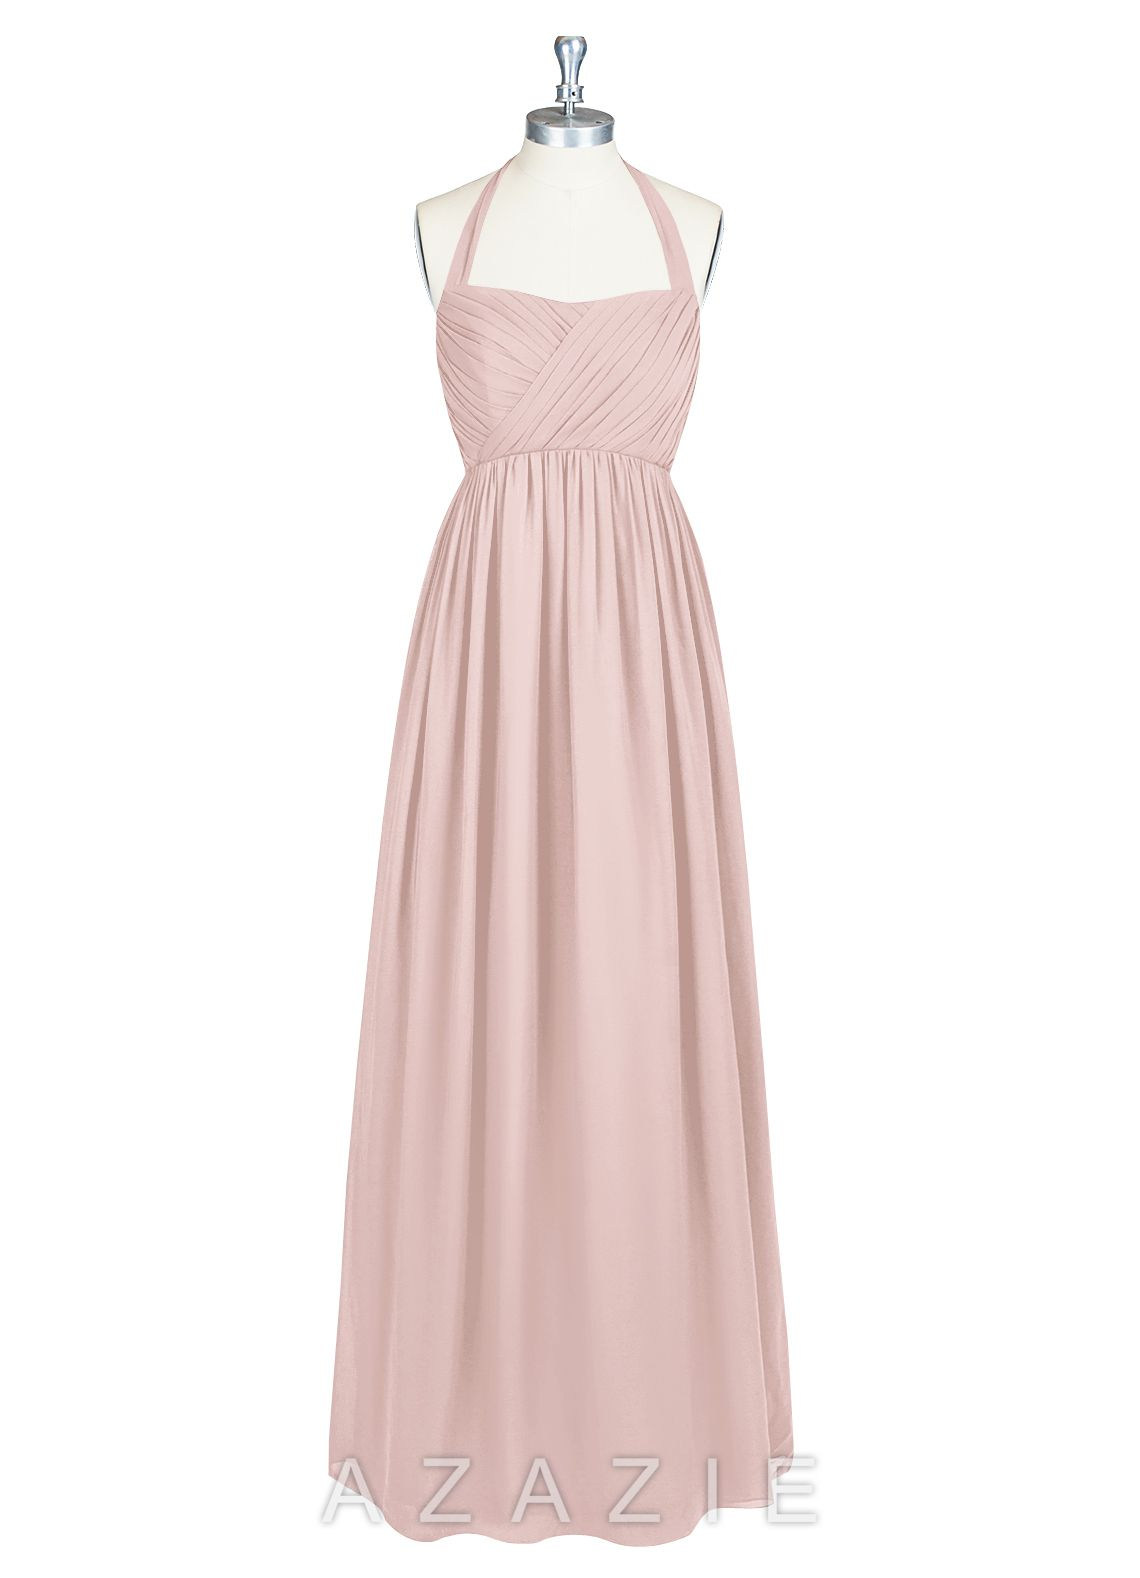 Shop Azazie Bridesmaid Dress - Francesca in Chiffon. Find the perfect made-to-order bridesmaid dresses for your bridal party in your favorite color, style and fabric at Azazie.